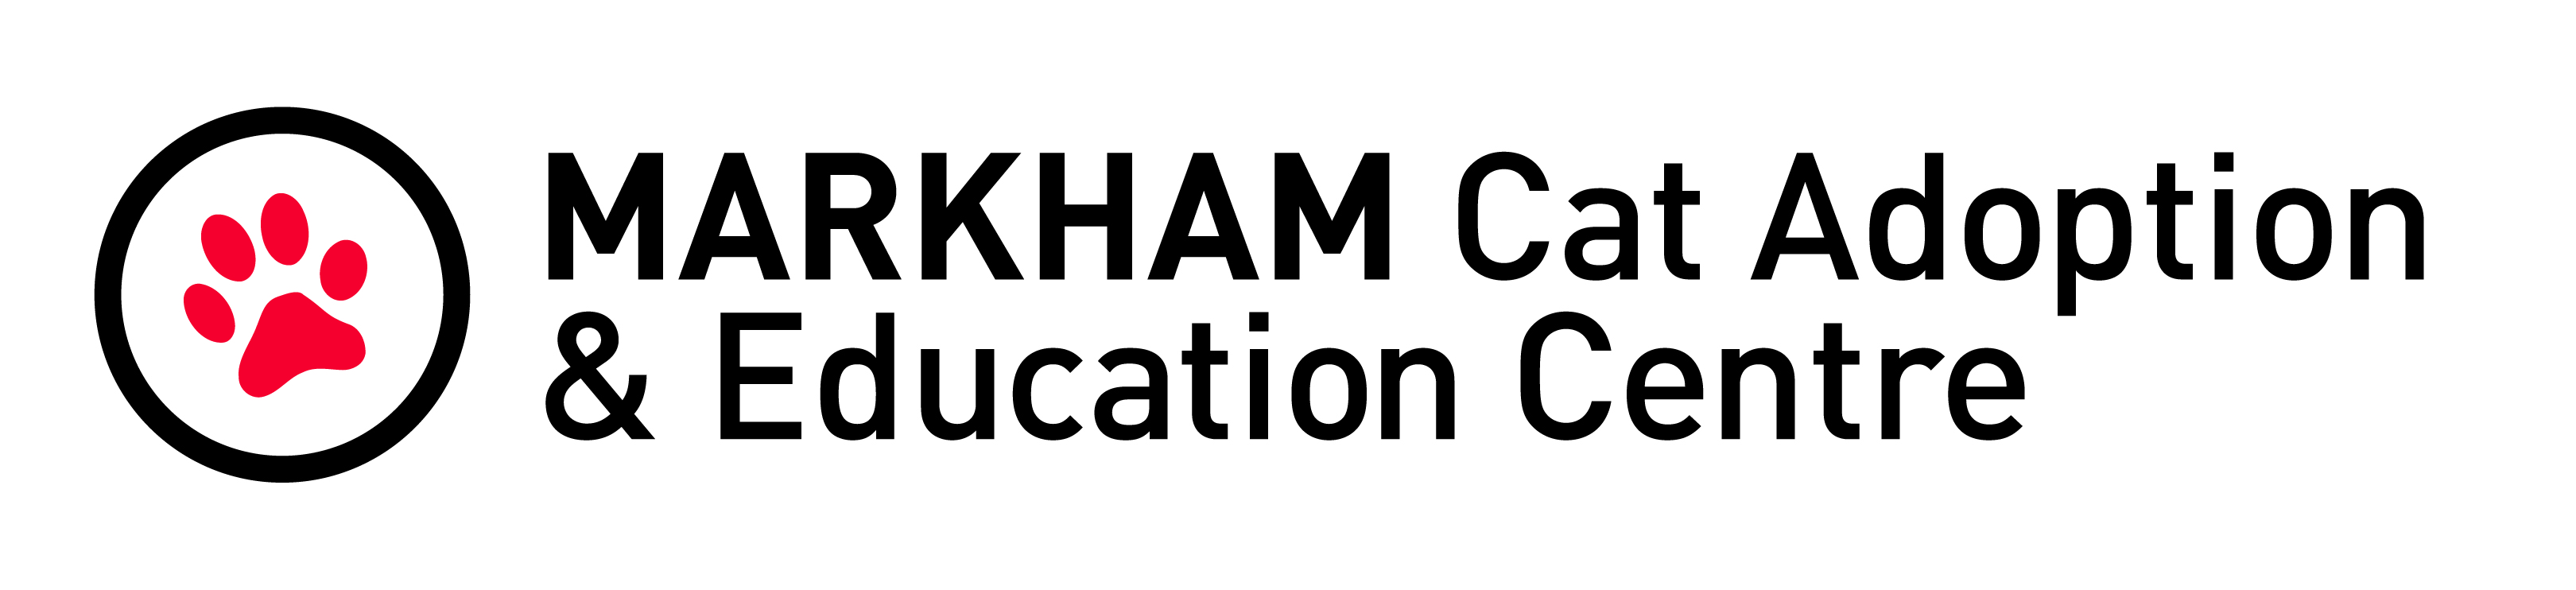 Markham CAEC (Cat Adoption & Education Centre)